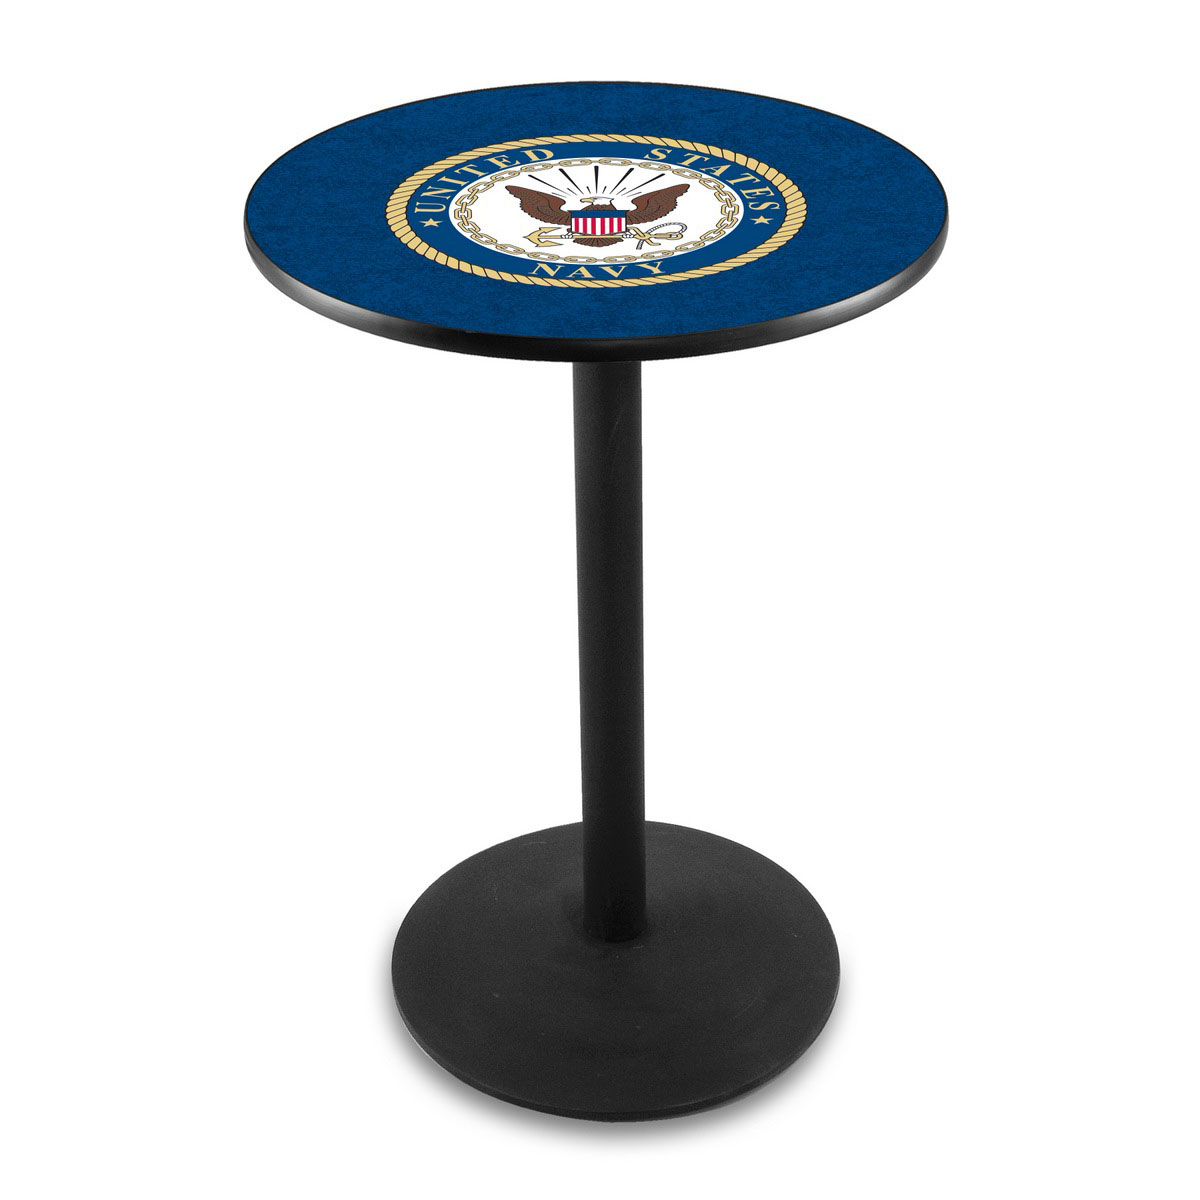 Lovable United-States-Navy-Logo-Pub-Bar-Table-Round-Stand Product Picture 865